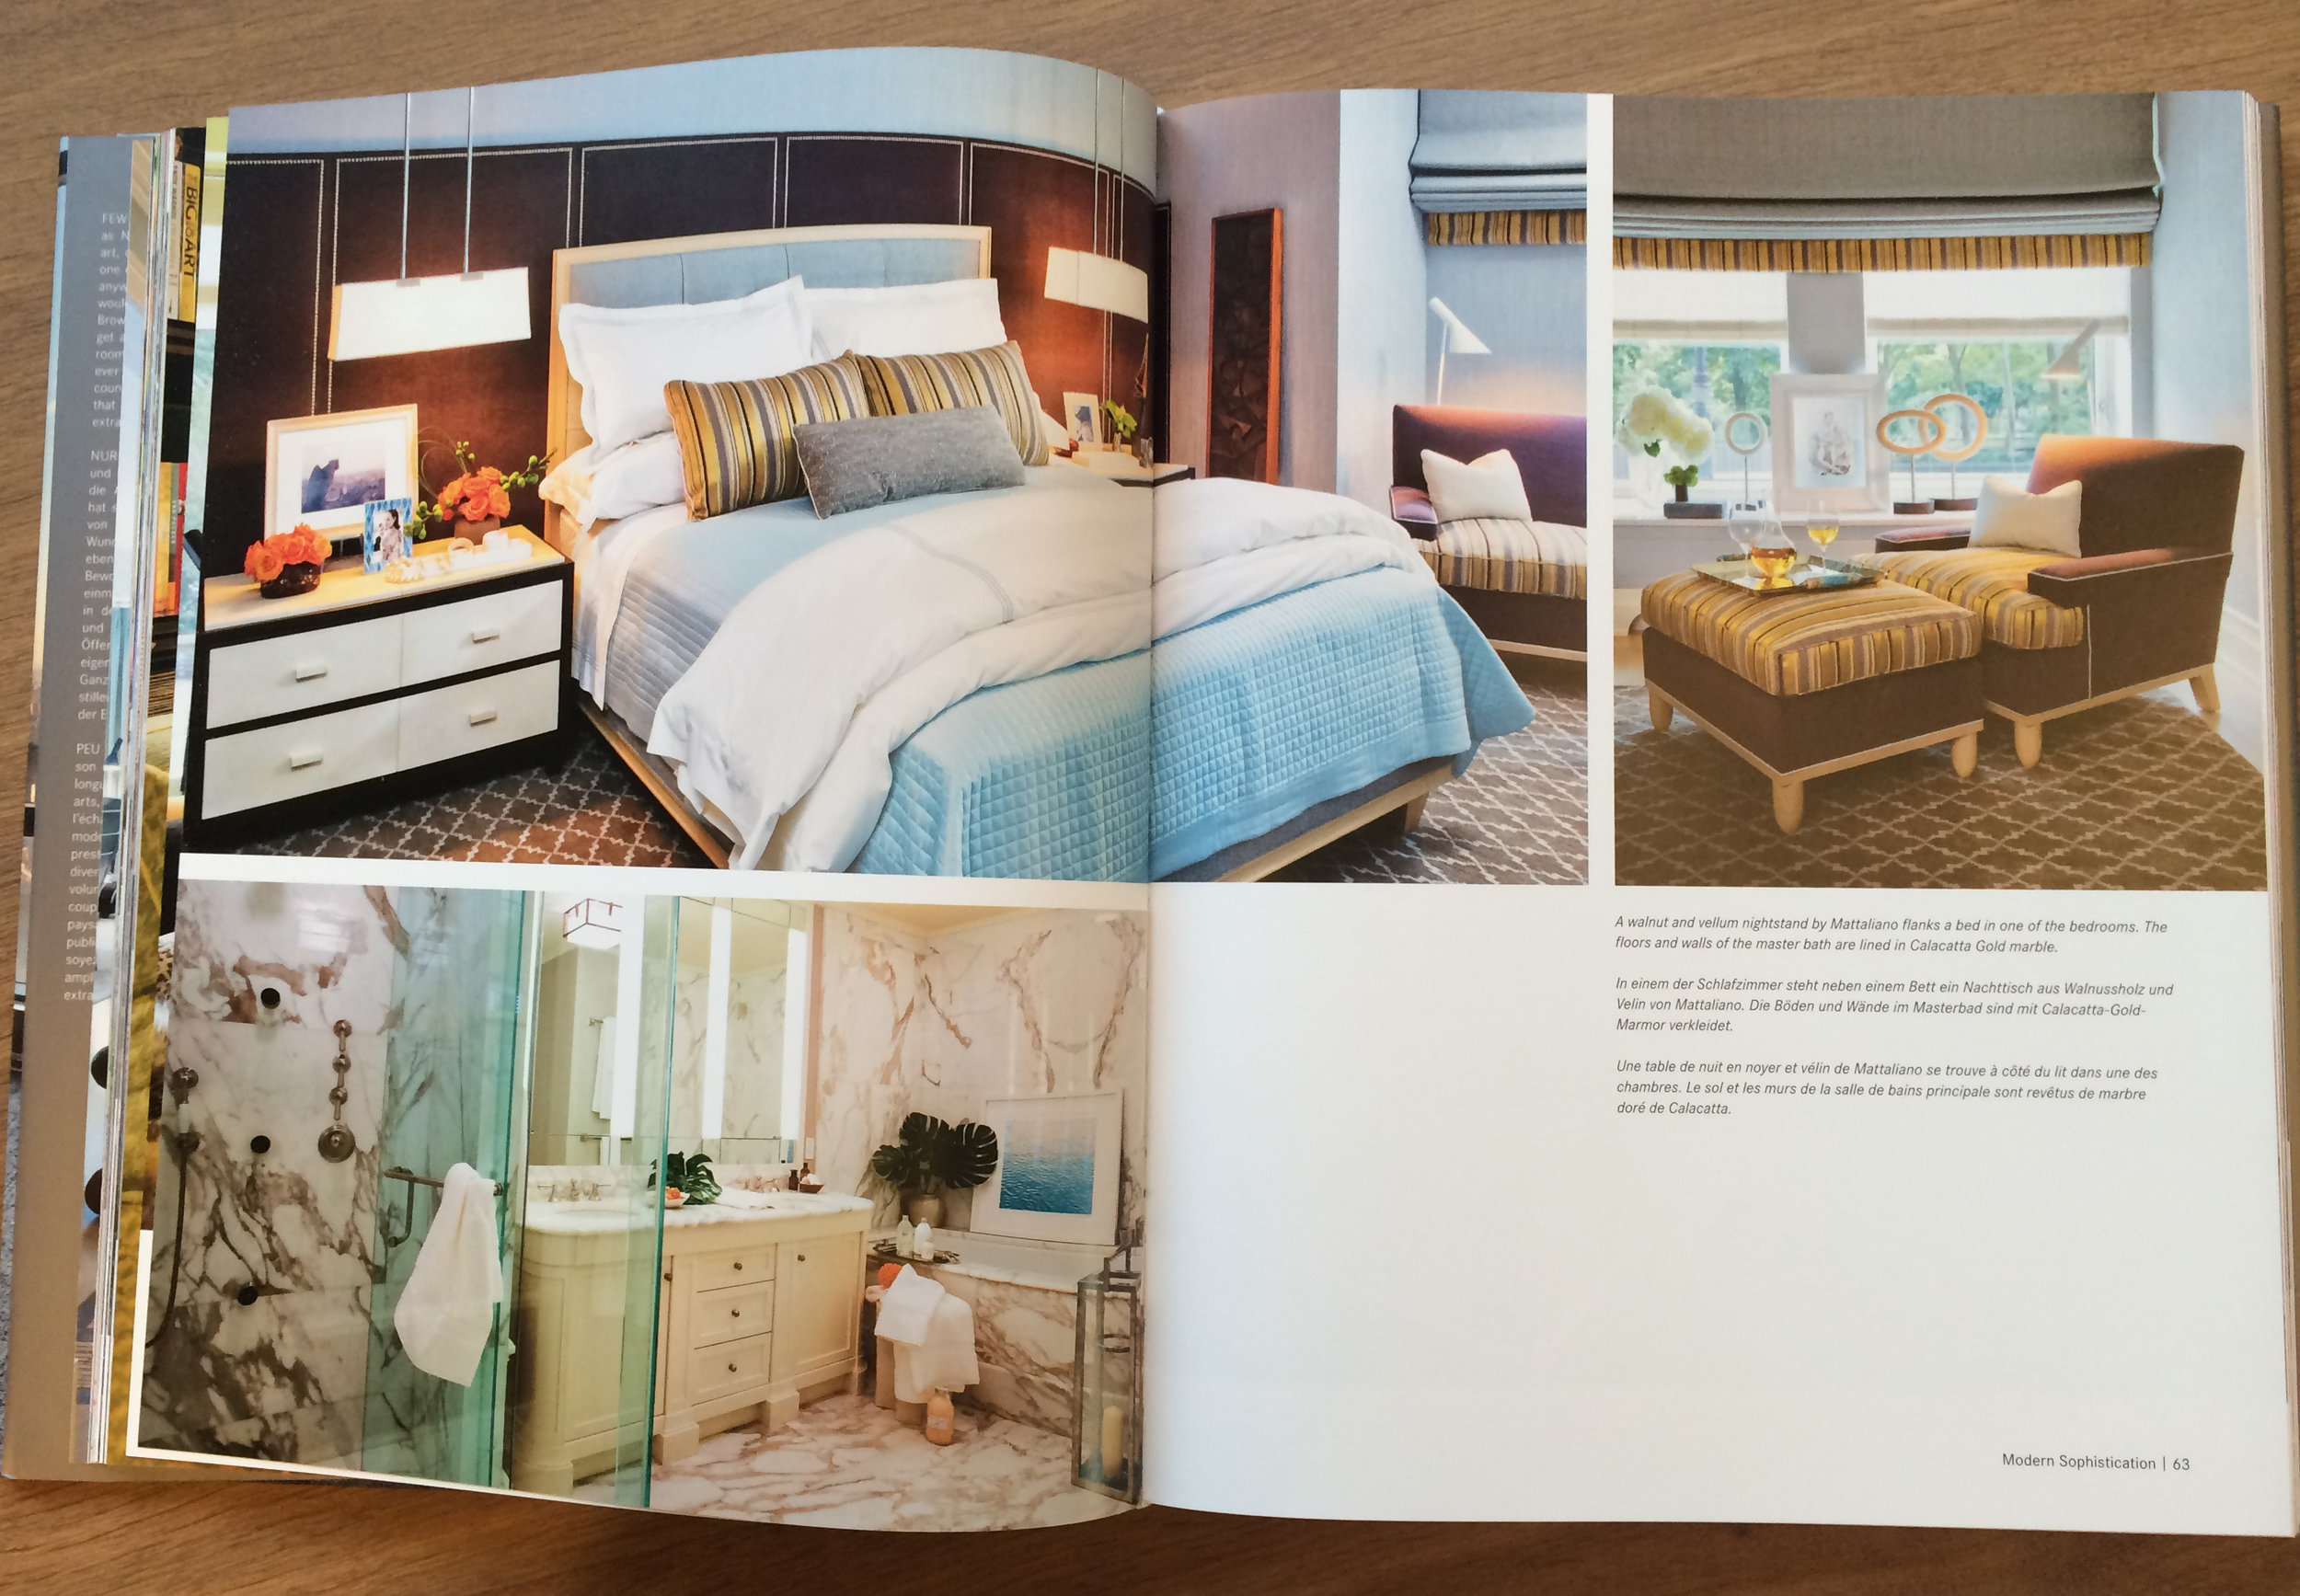 Living In Style New York Book 2014 - Page 4.JPG